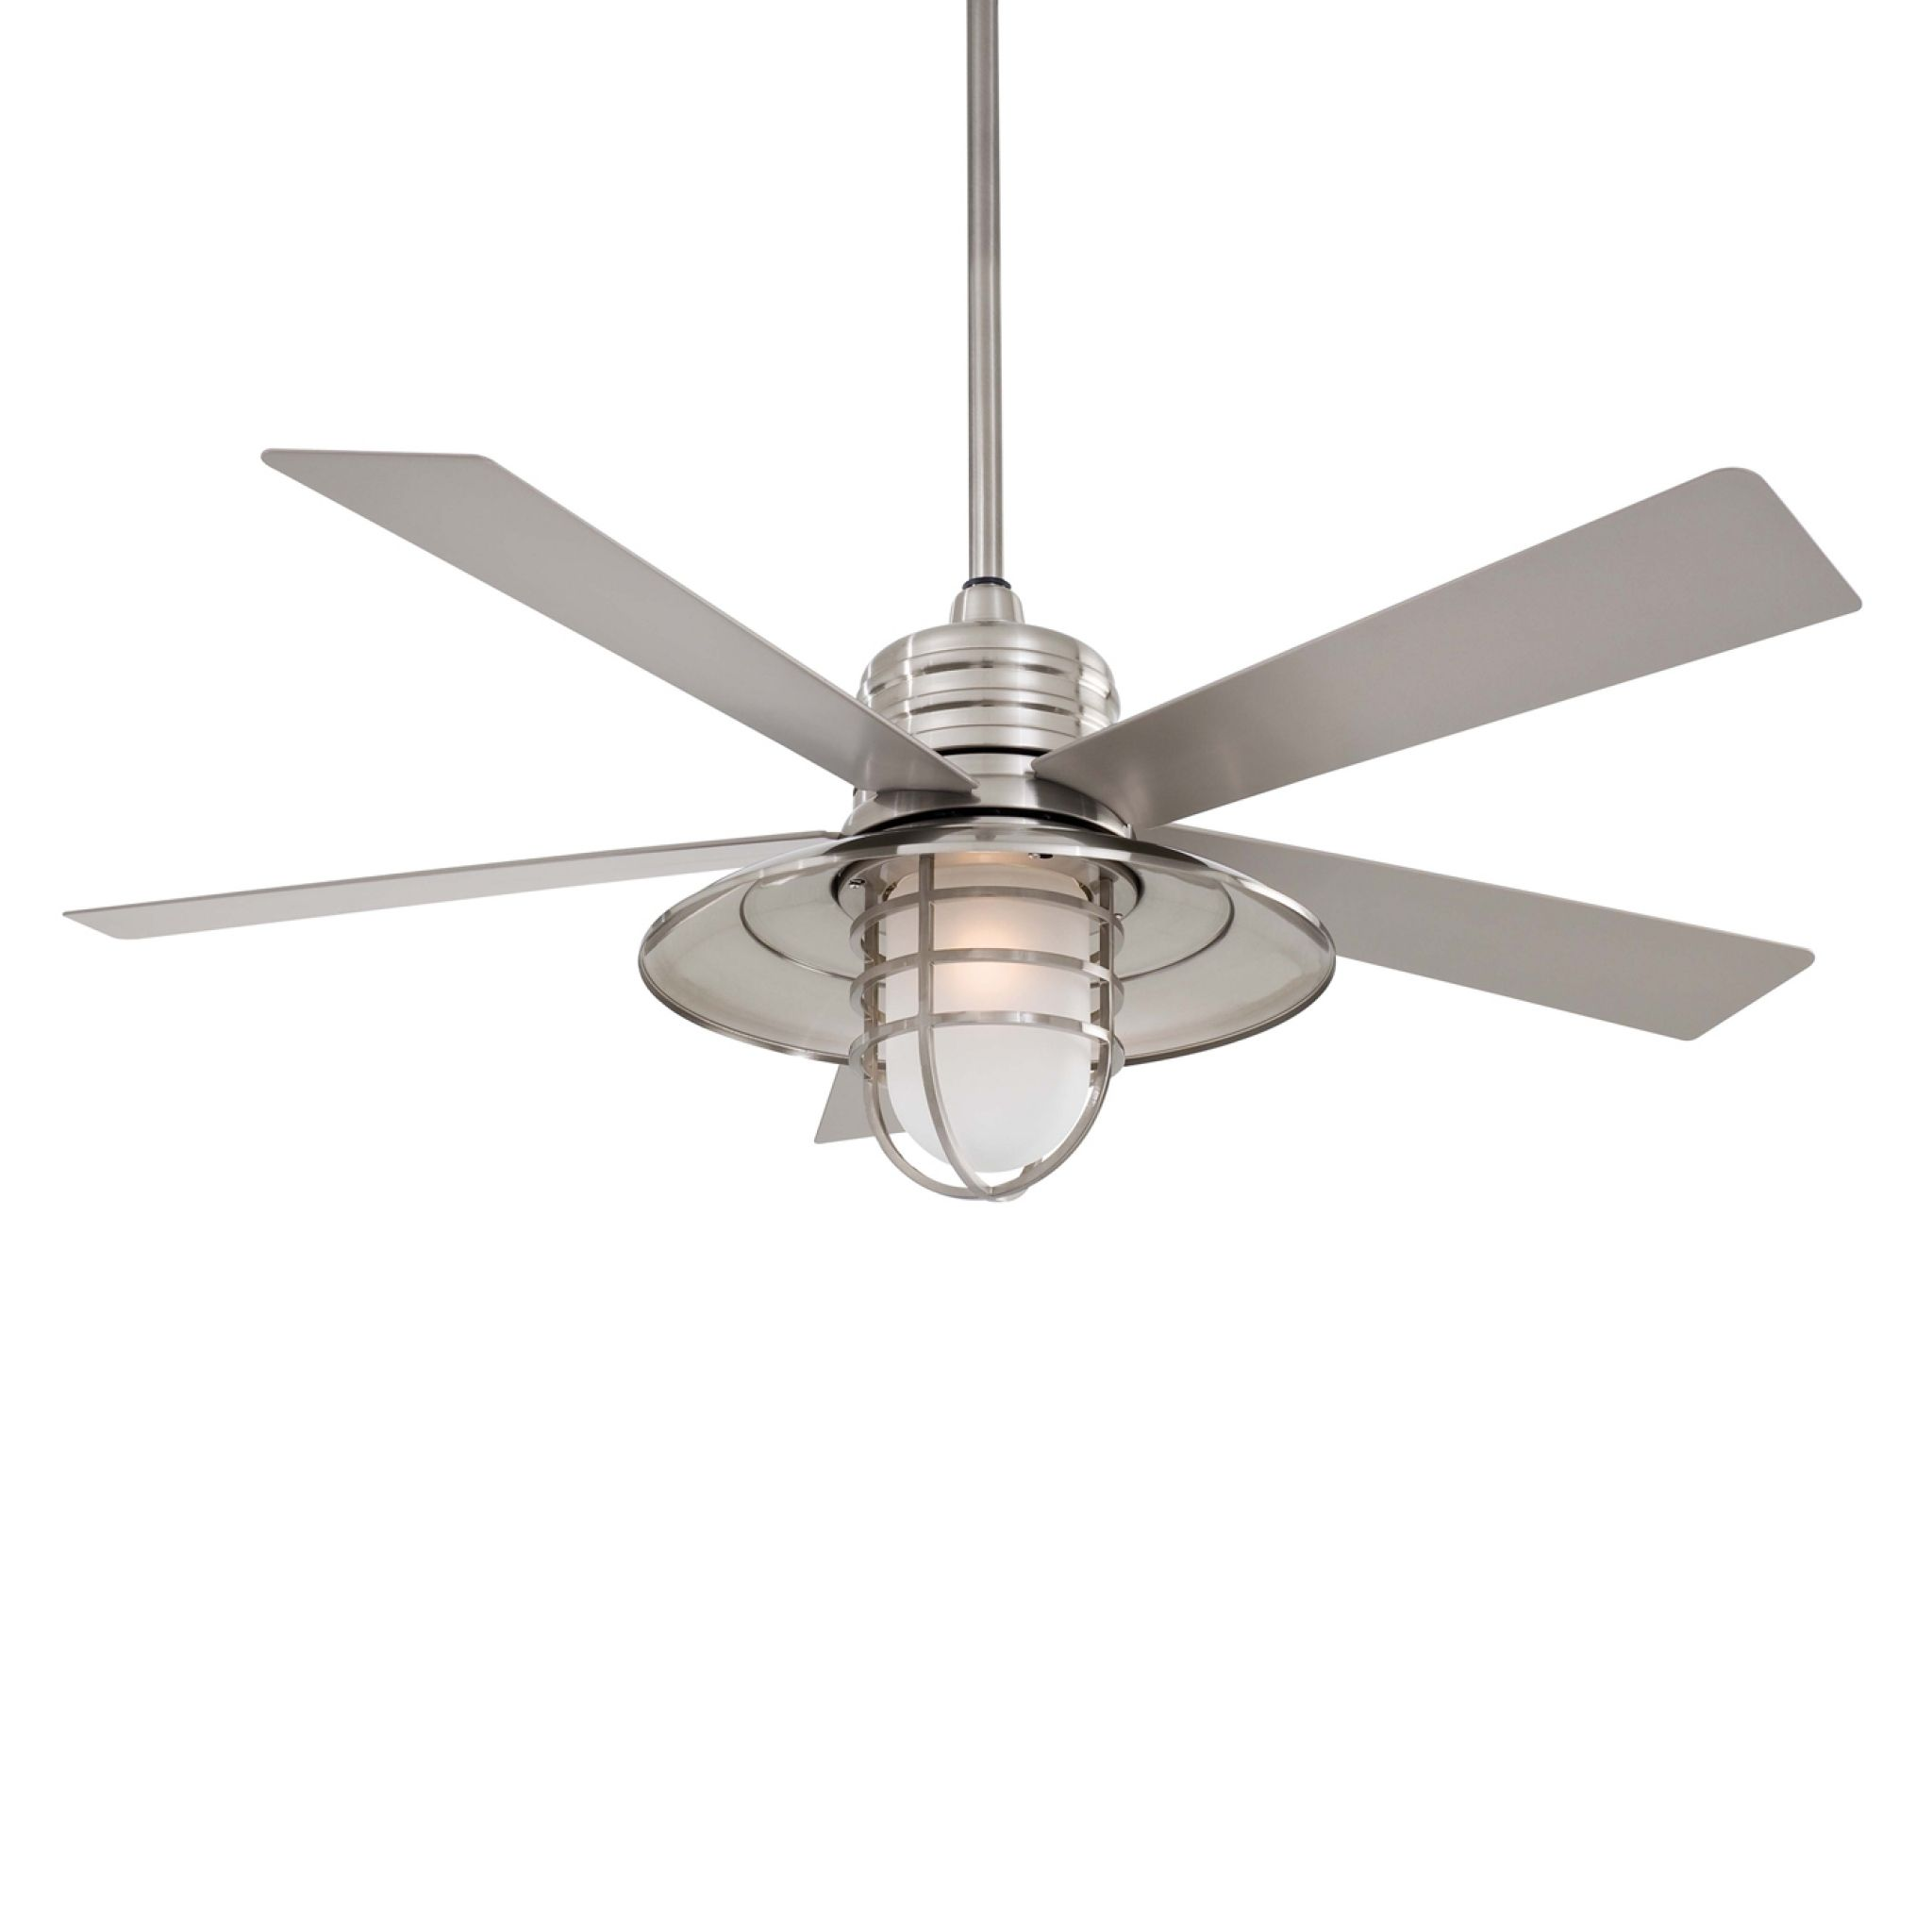 Small Outdoor Ceiling Fan With Light   Best Paint For Interior Walls Check  More At ...